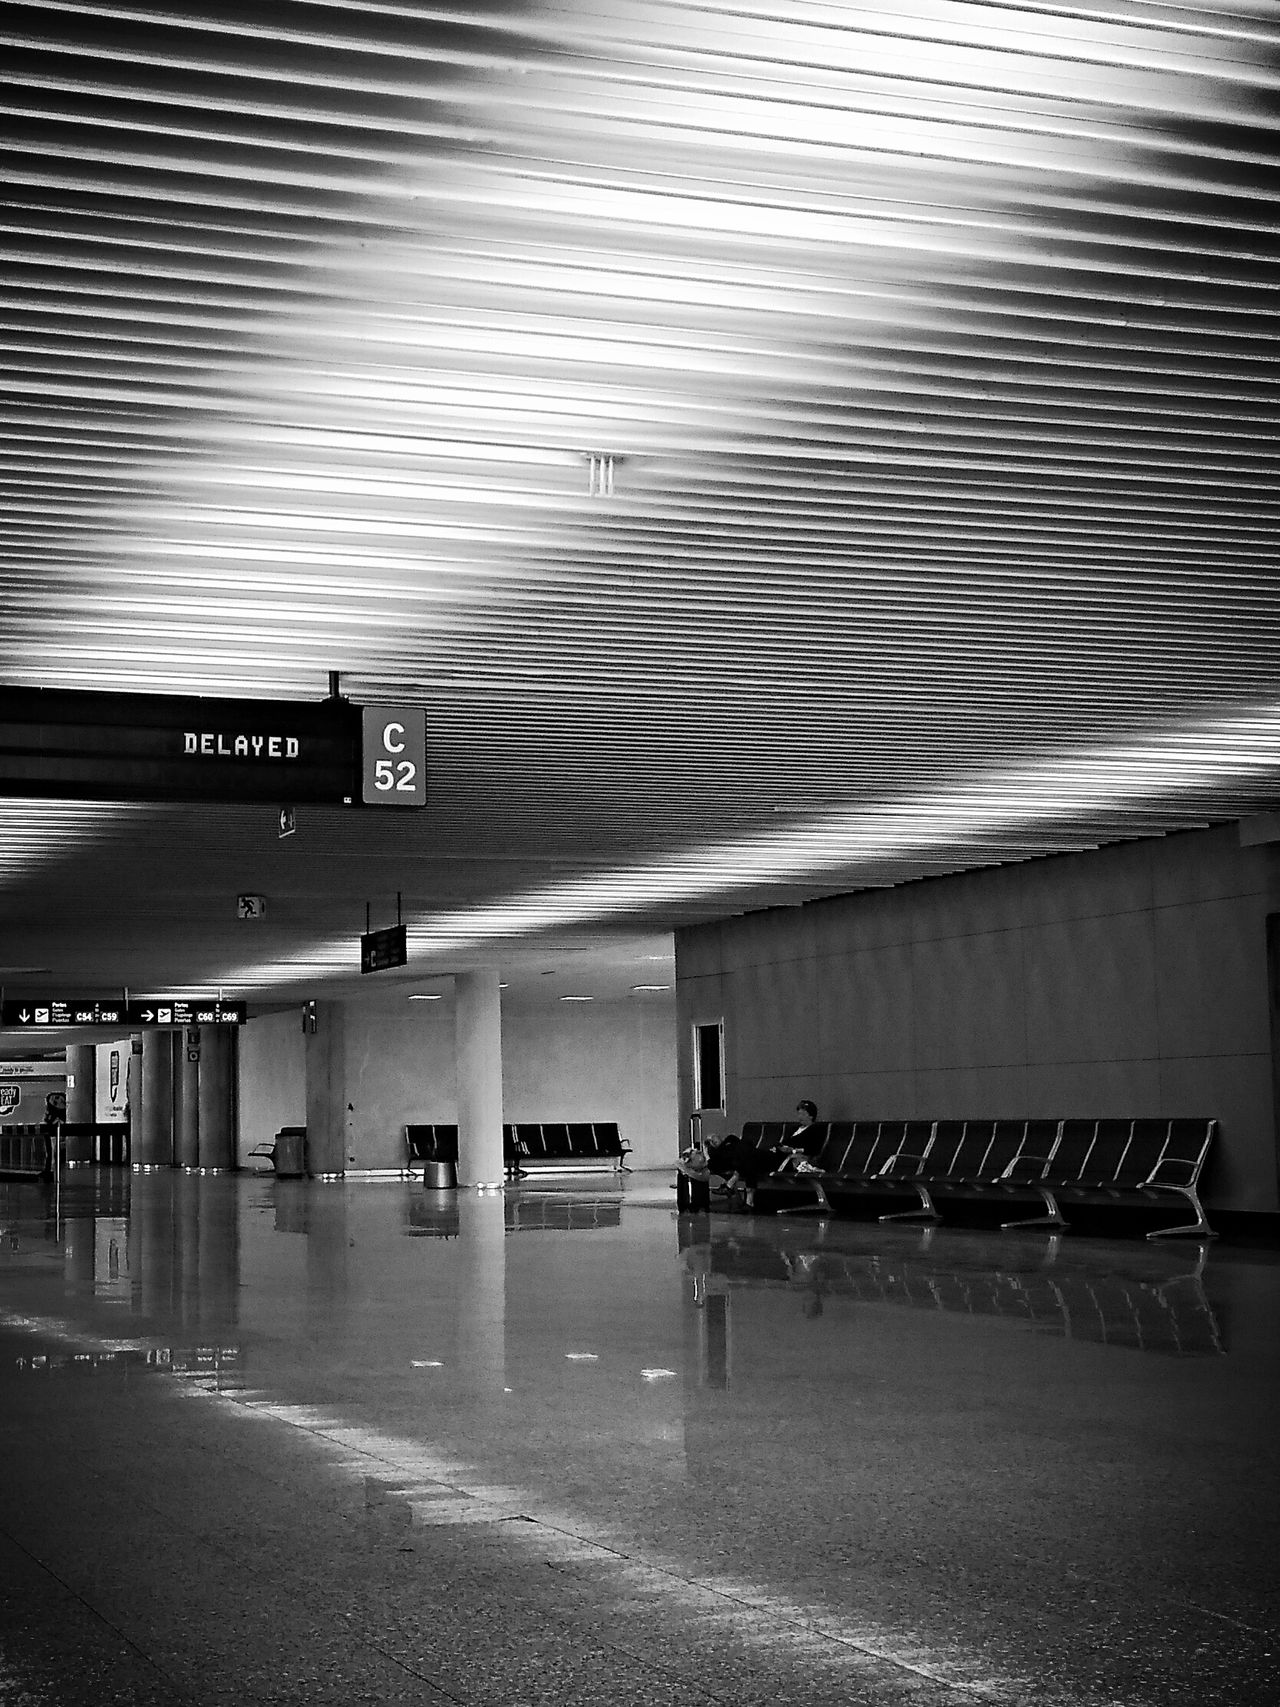 Airport Airport Waiting Delay Delayed DelayedFlight Delay Flight Delays  Flight Gate Airportphotography Airport Departure Area Airport Life Travelling Travelling Photography Travel Flight ✈